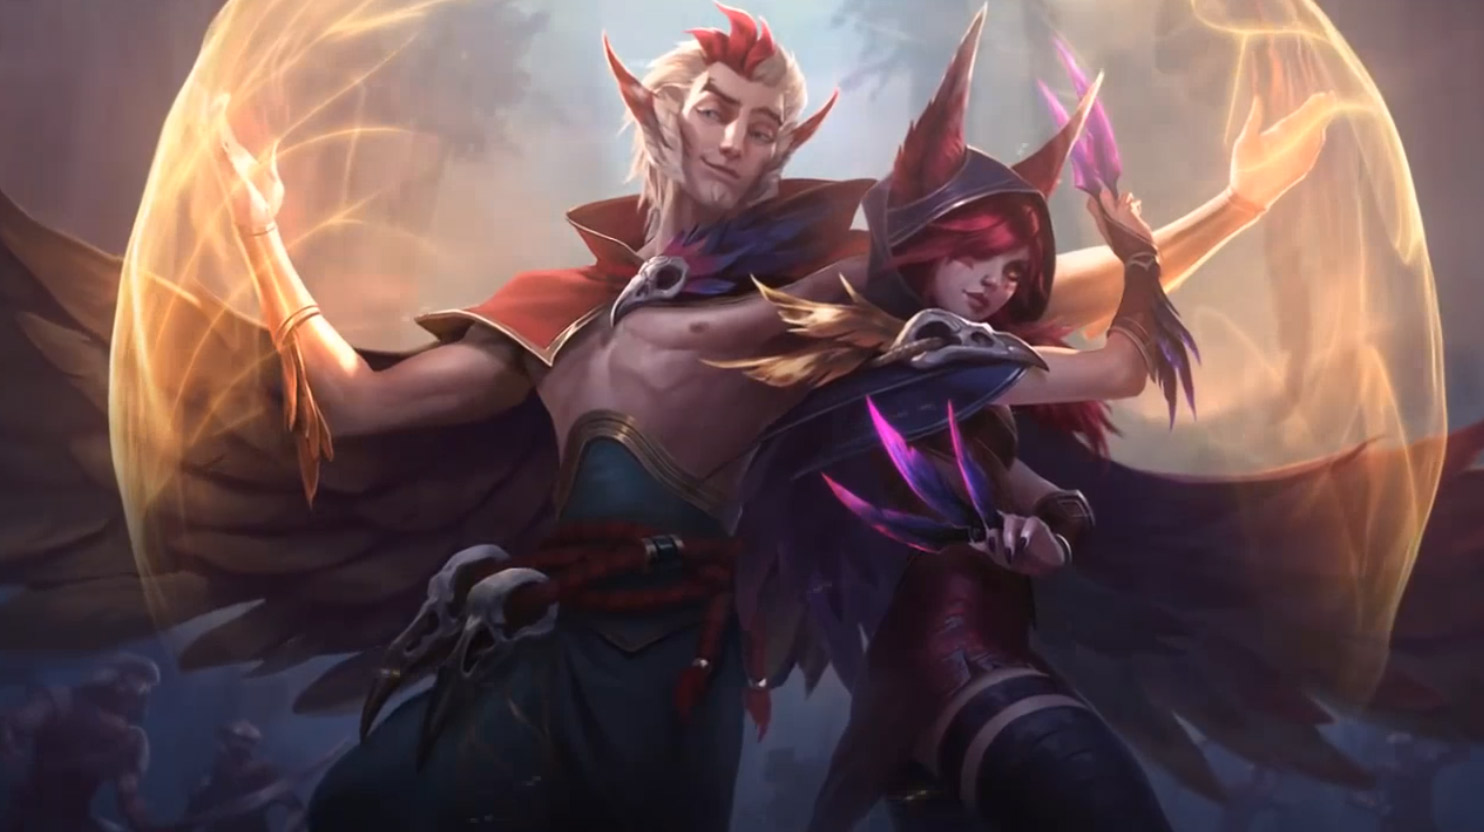 League of Legends Xayah Free Game Animated Wallpaper.